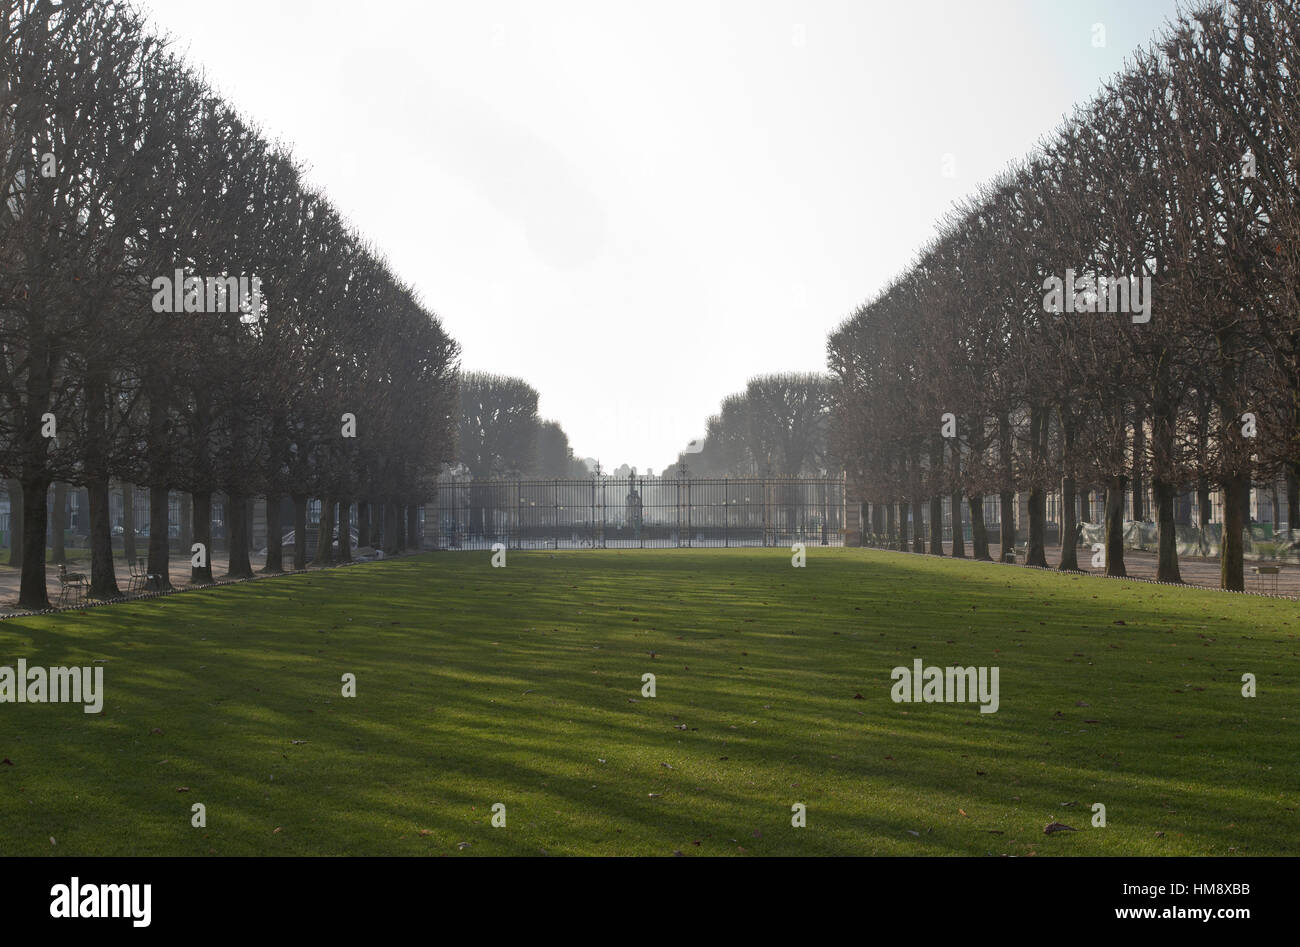 View of the Gardens of Great Explorers in Montparnasse in the 14th arrondissement of Paris in winter - Stock Image